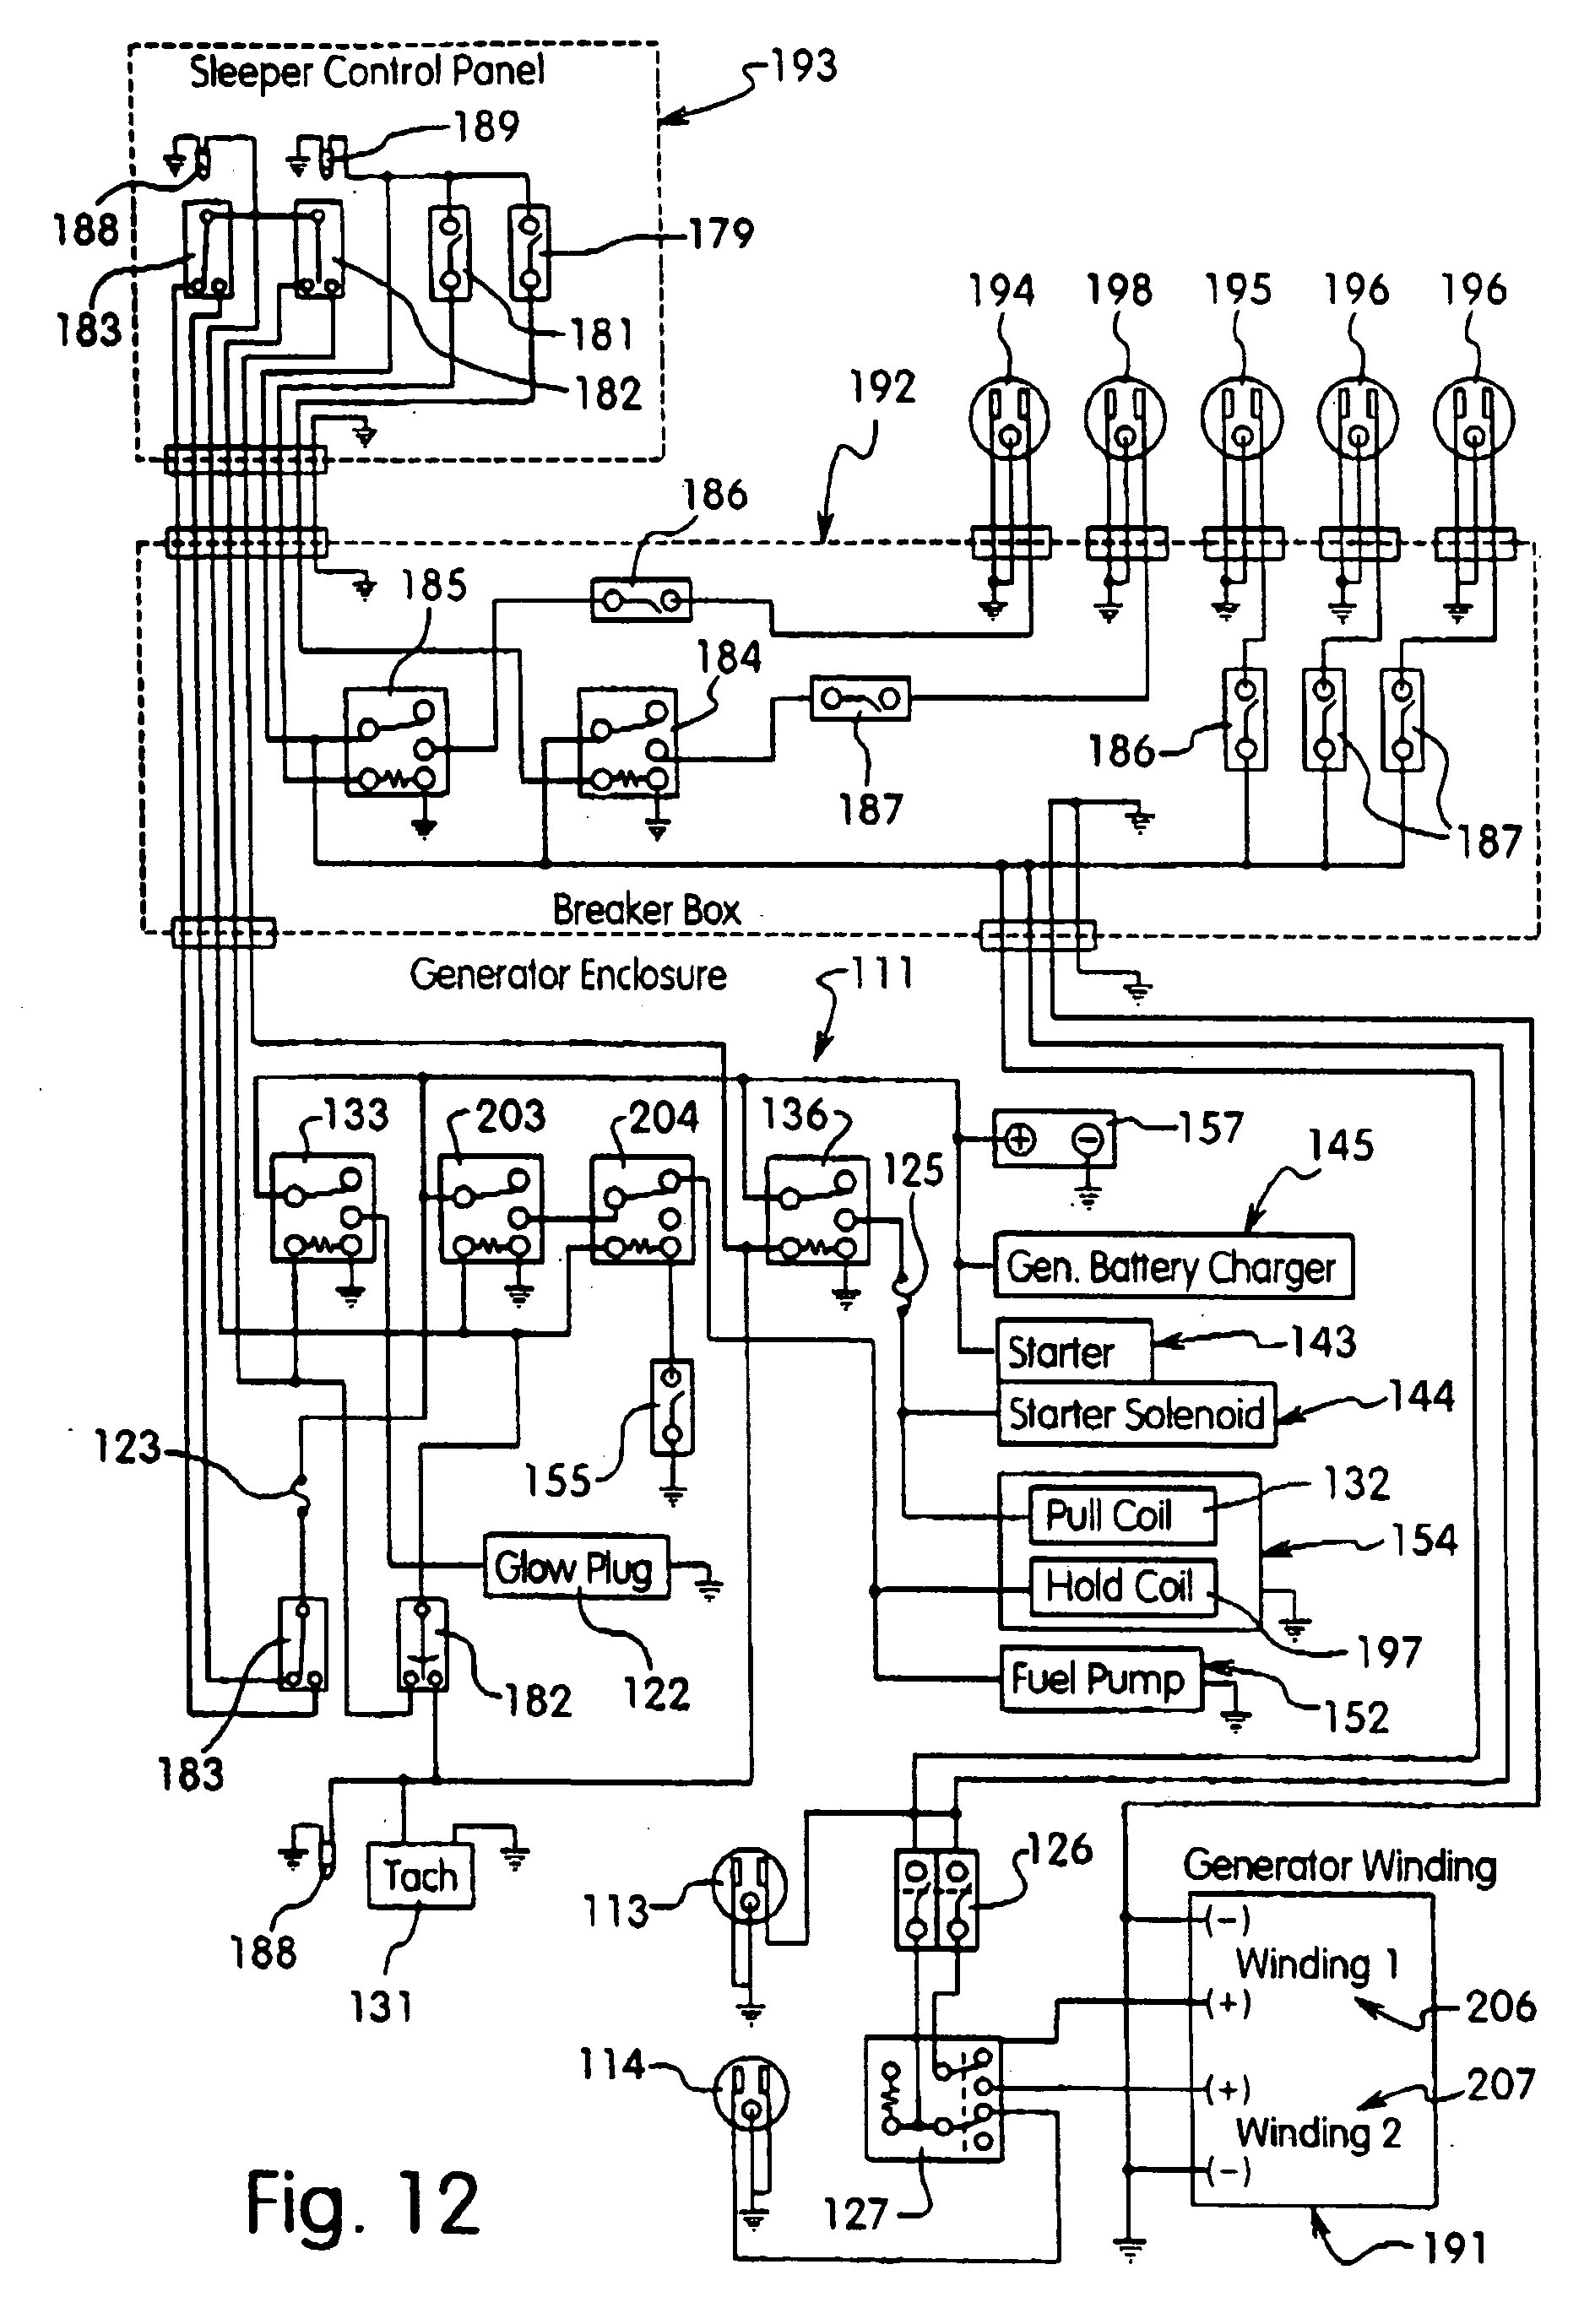 Whelen Beacon Light Wiring Diagram - Application Wiring Diagram •